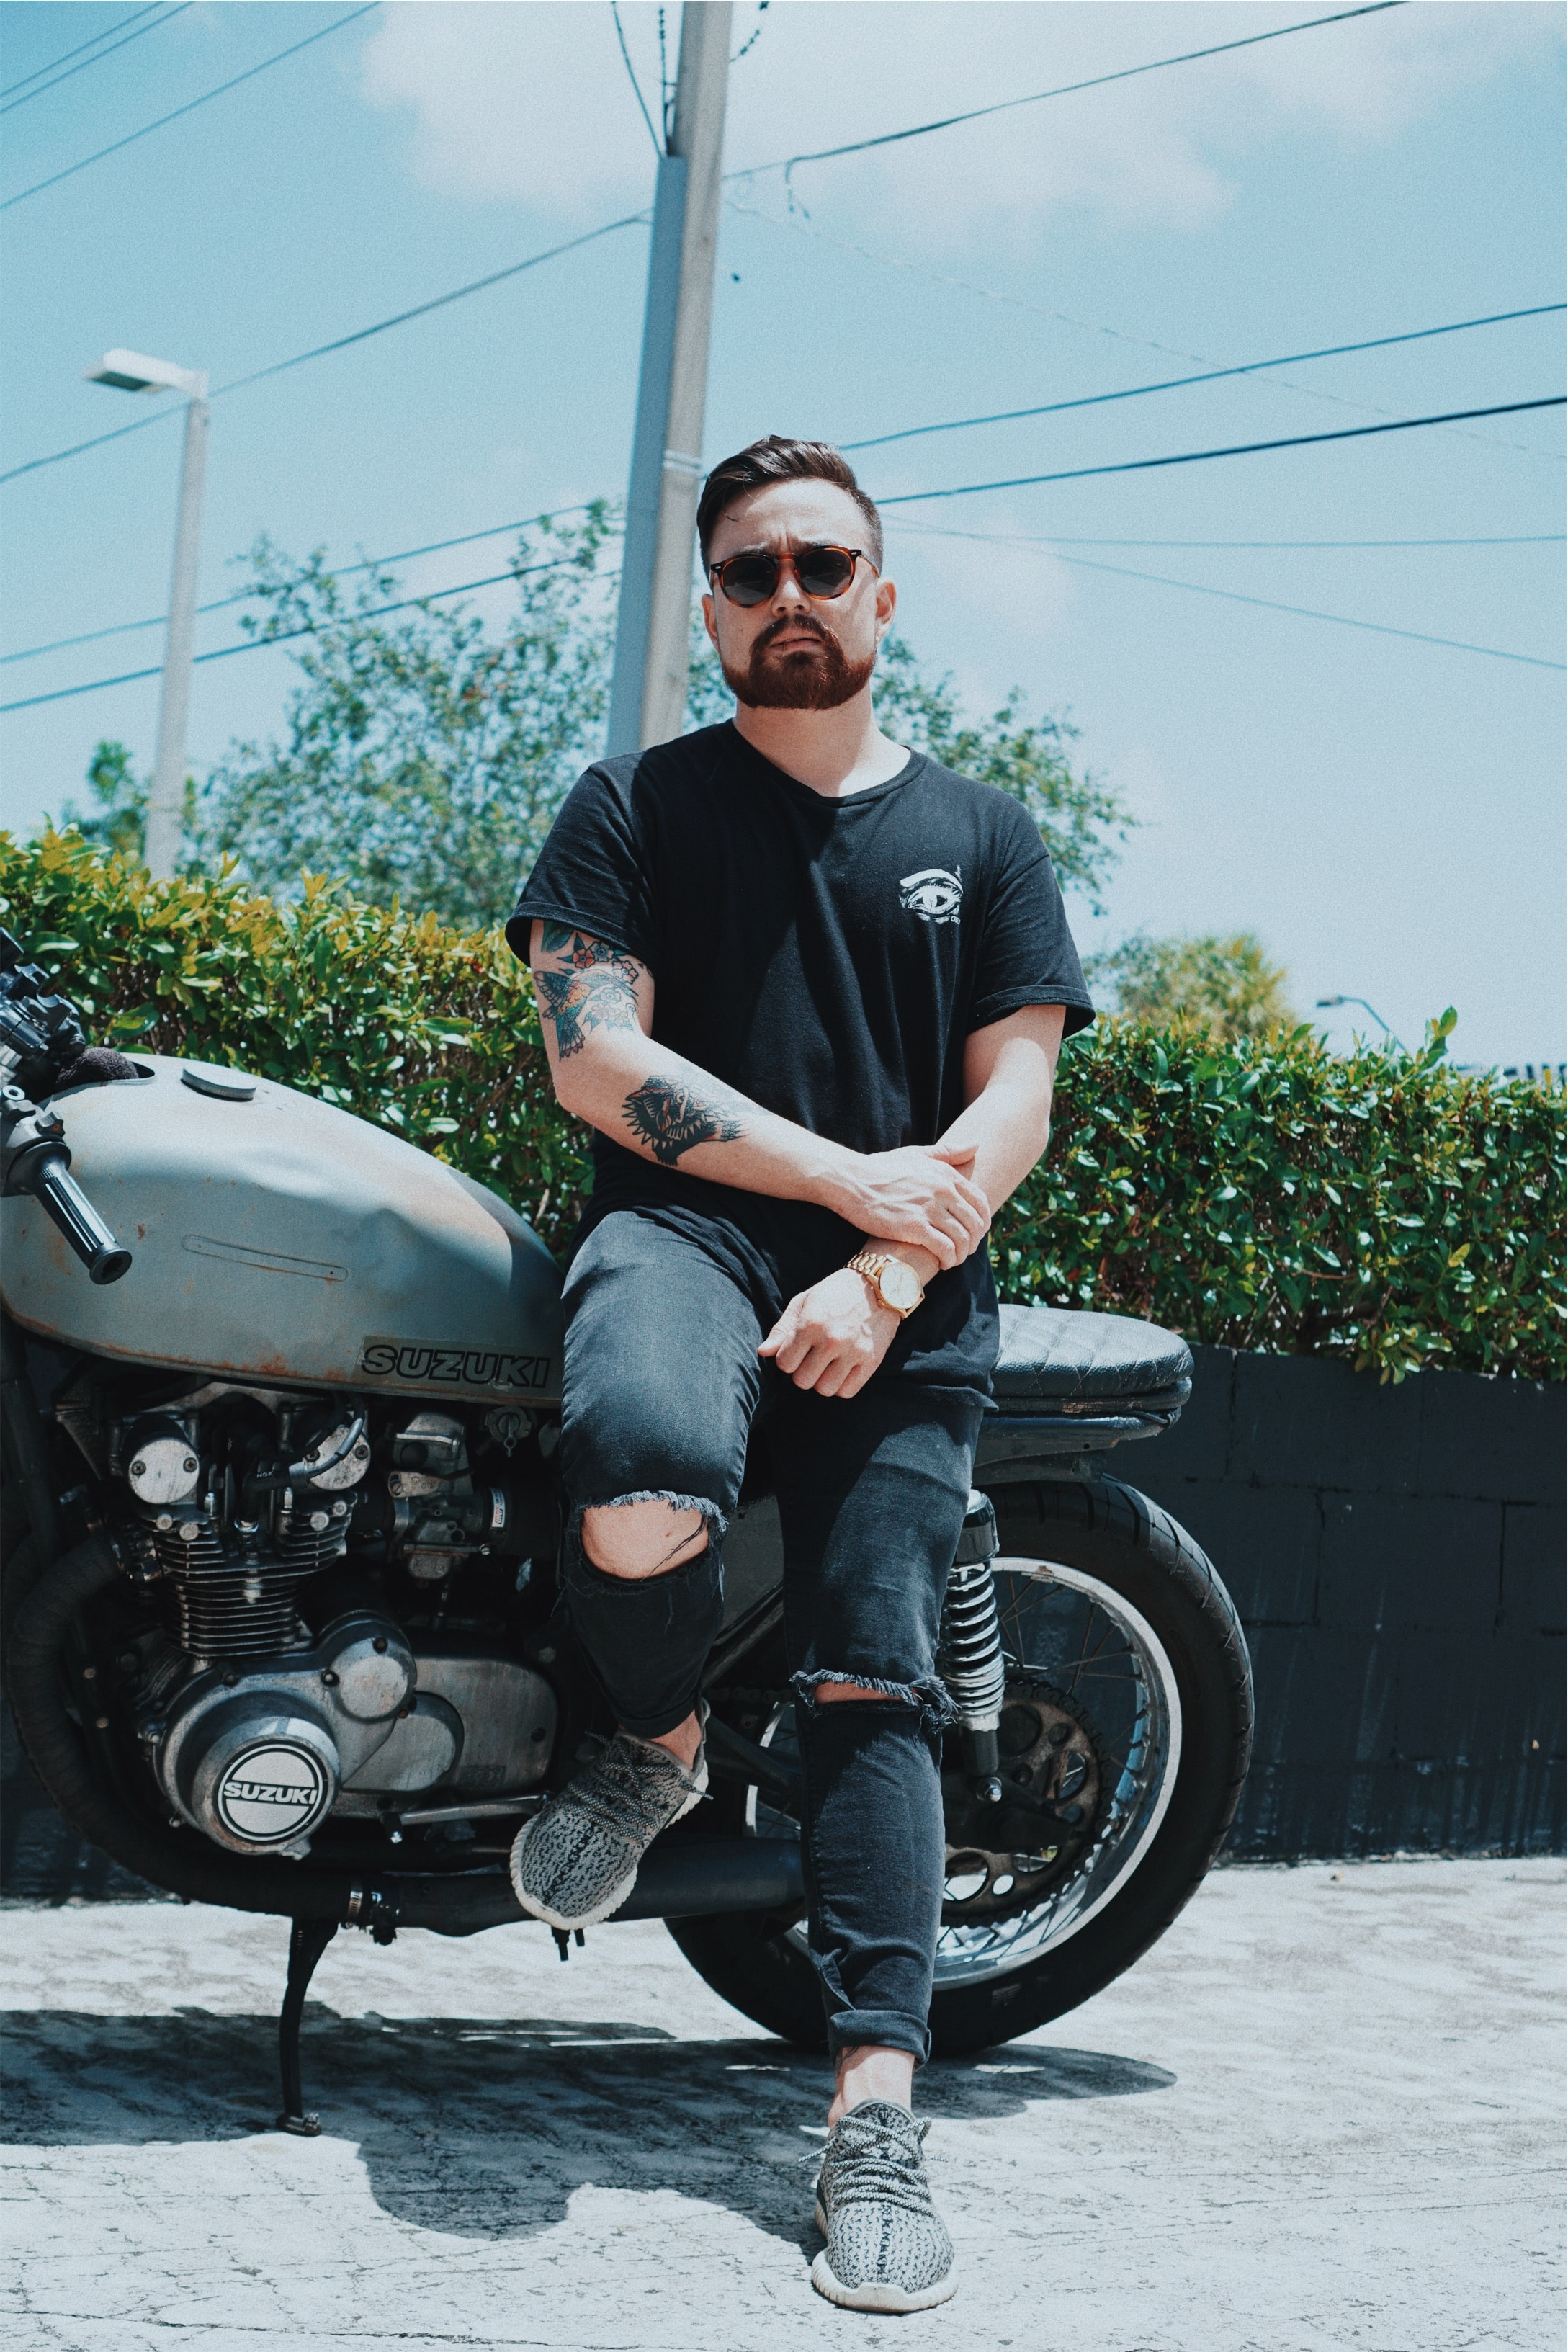 Tattooed man with a beard and shades in a black shirt, distressed jeans and sneakers leaning on his Suzuki motorcycle in front of bushes and telephone poles